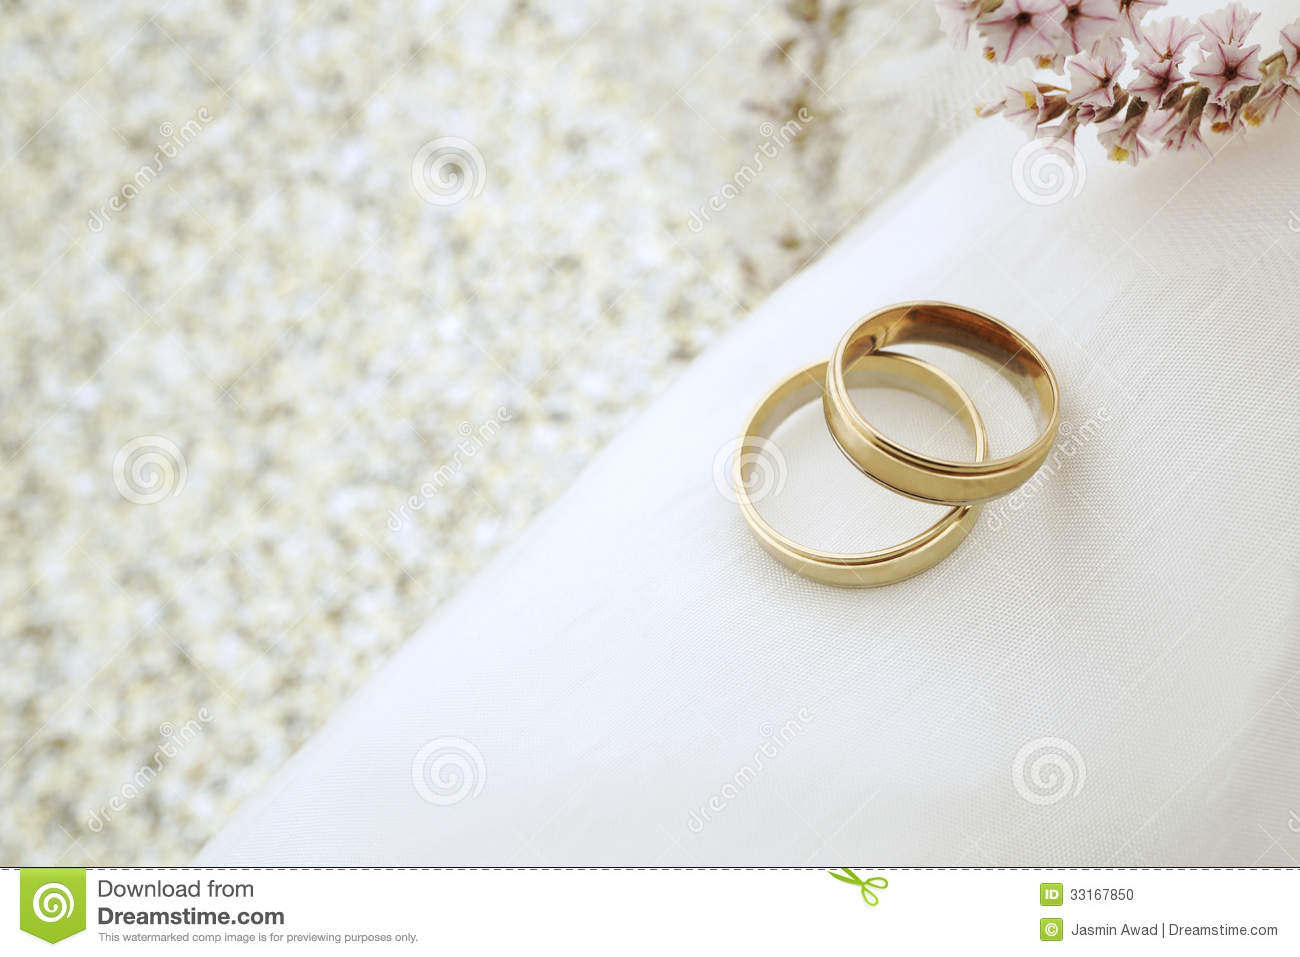 Wedding Invite With Gold Rings Stock Photo - Image of wedding, white ...